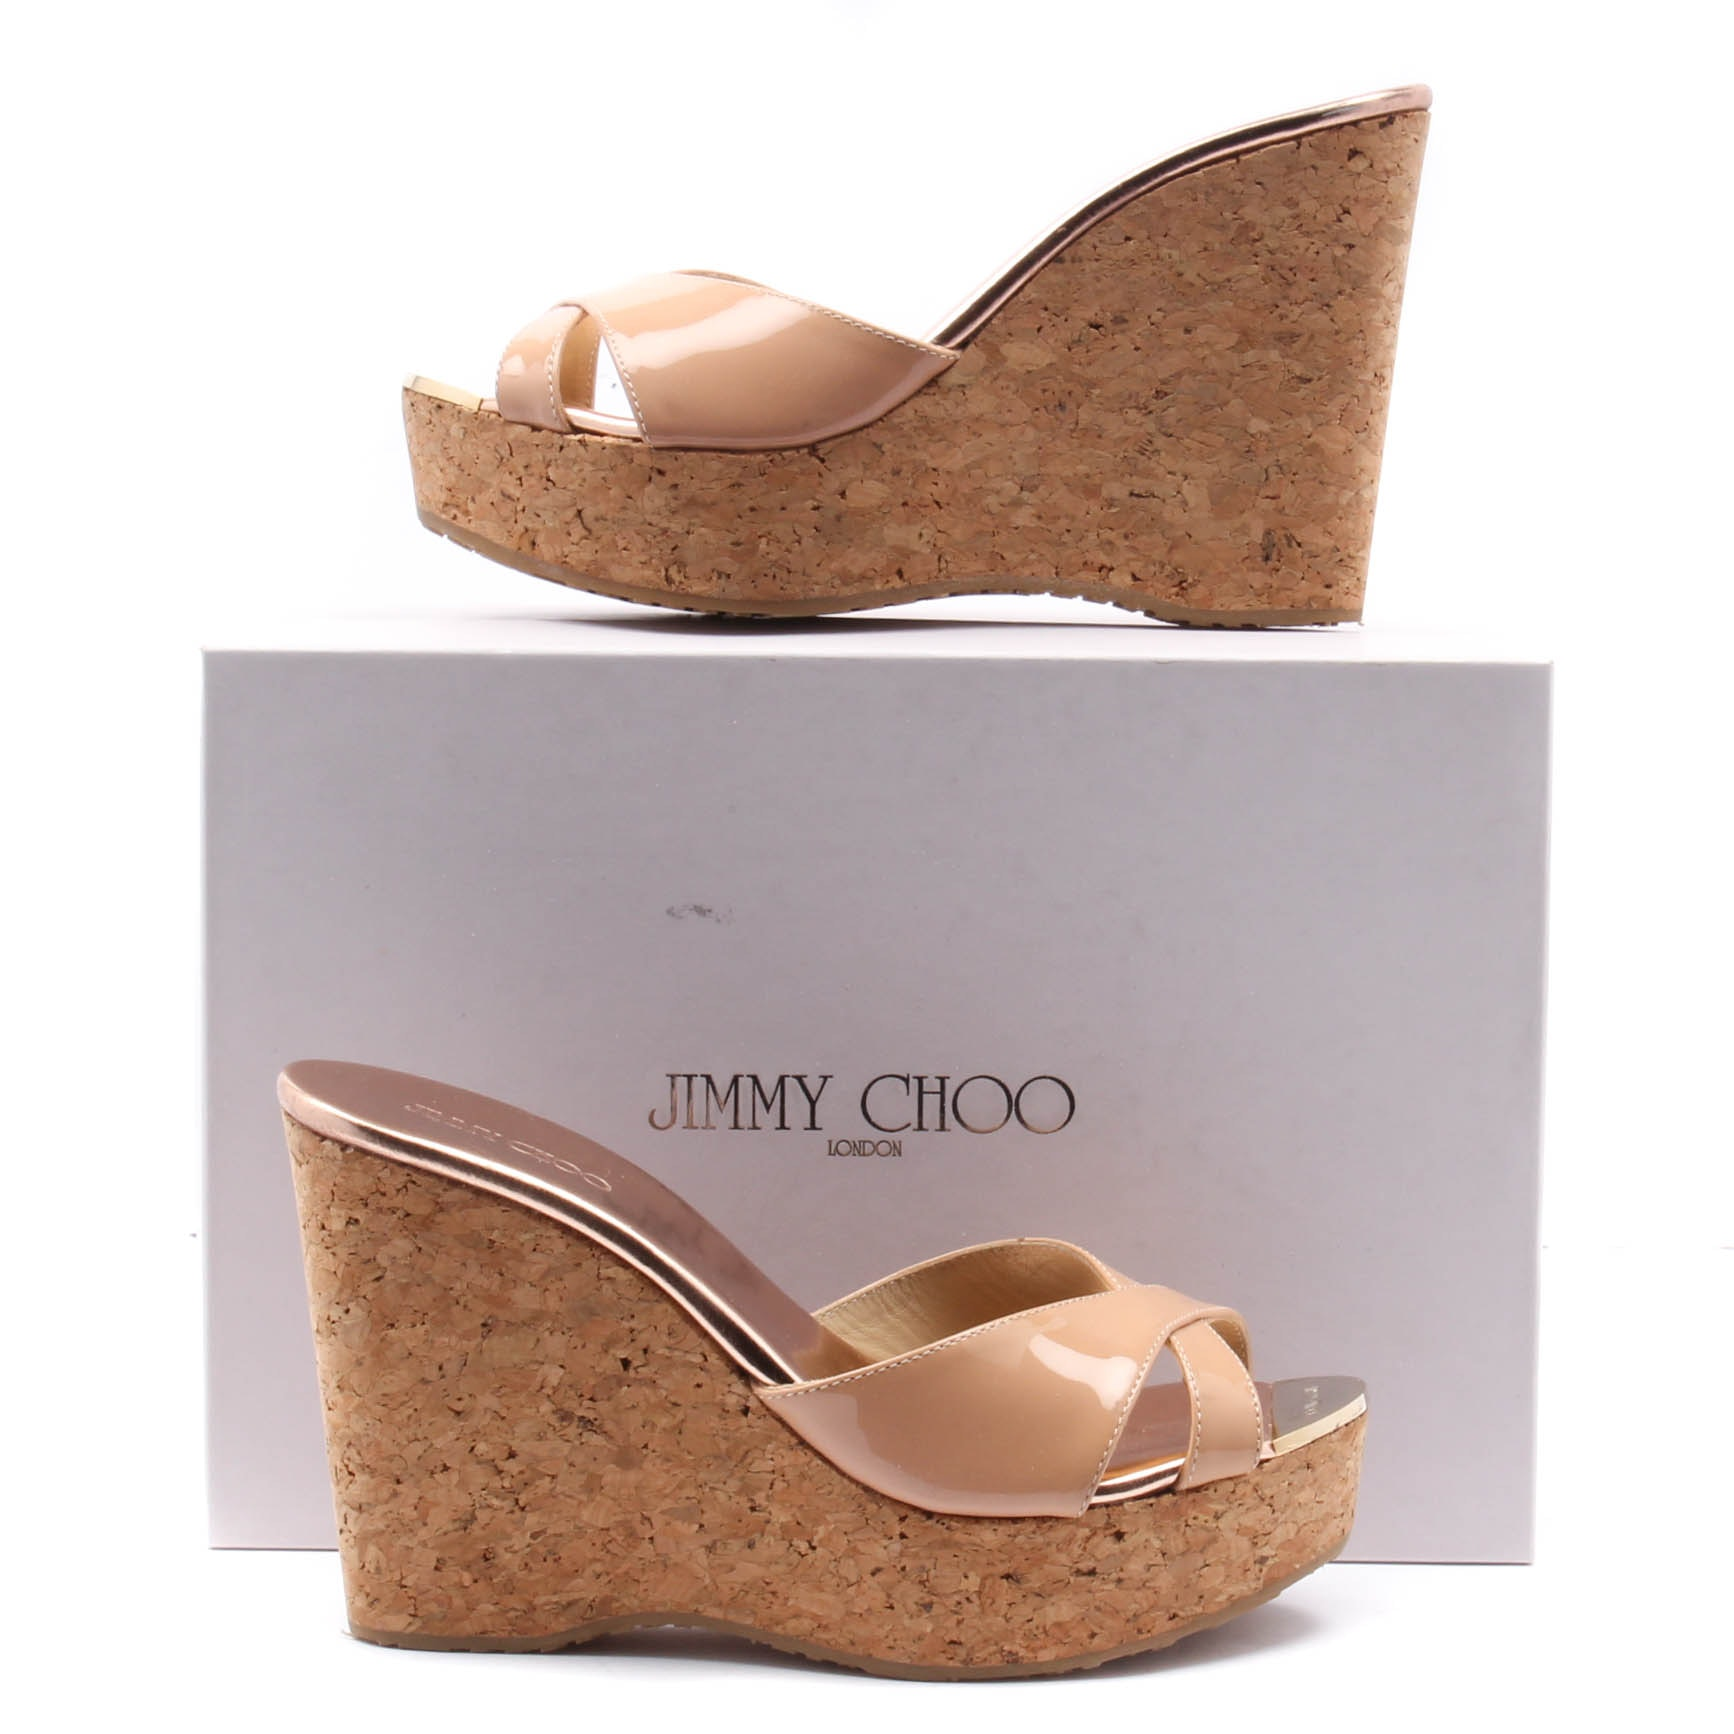 Jimmy Choo Cork Wedge Heel Blush Patent Leather Sandals